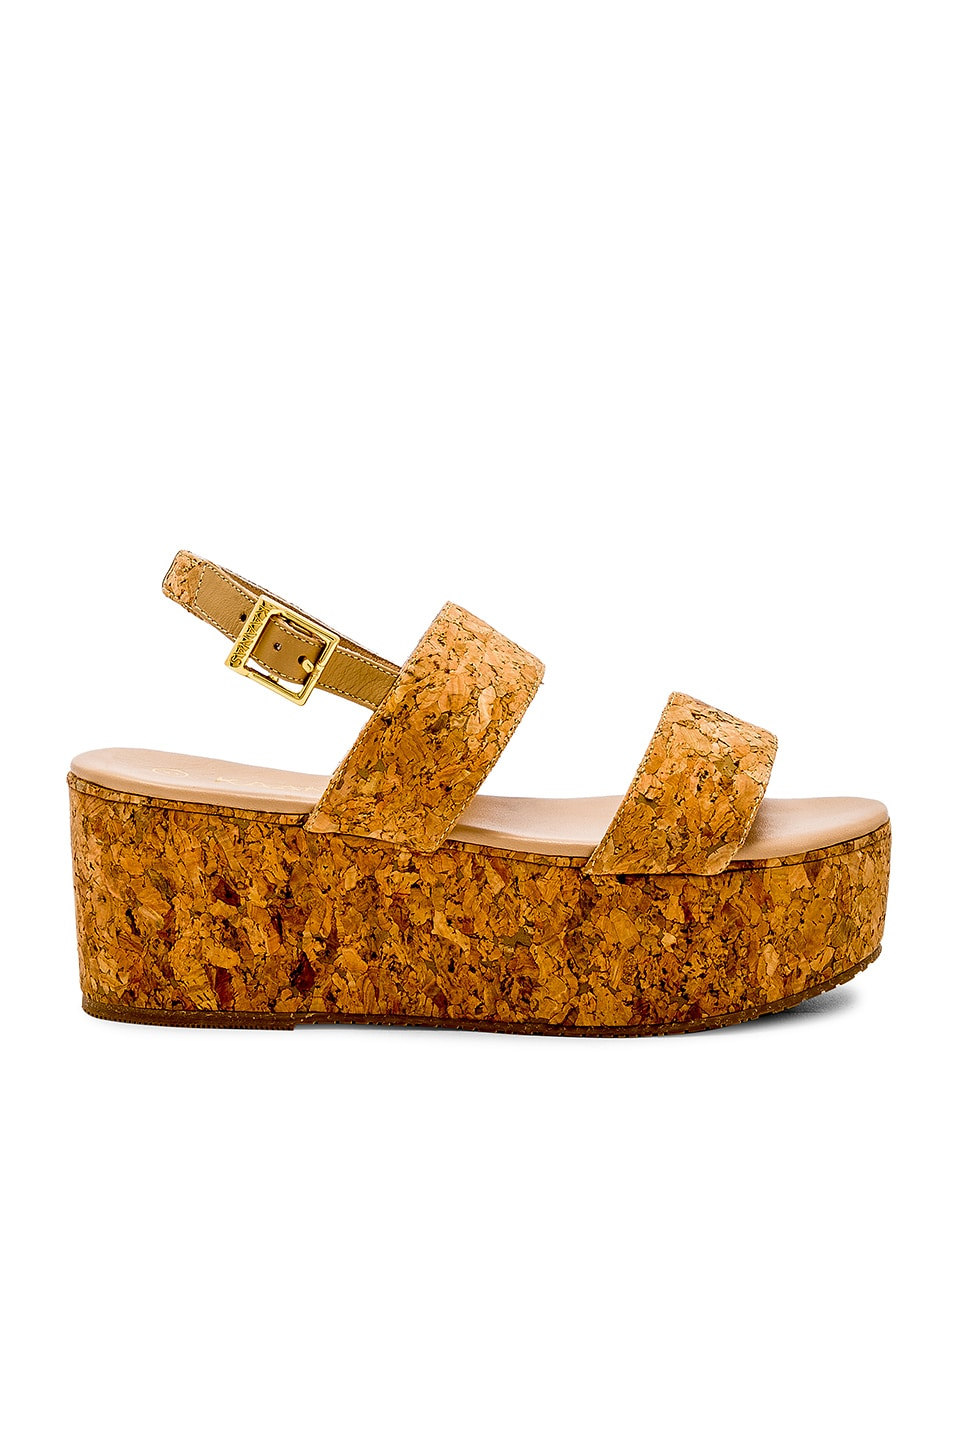 GOA CORK WEDGE